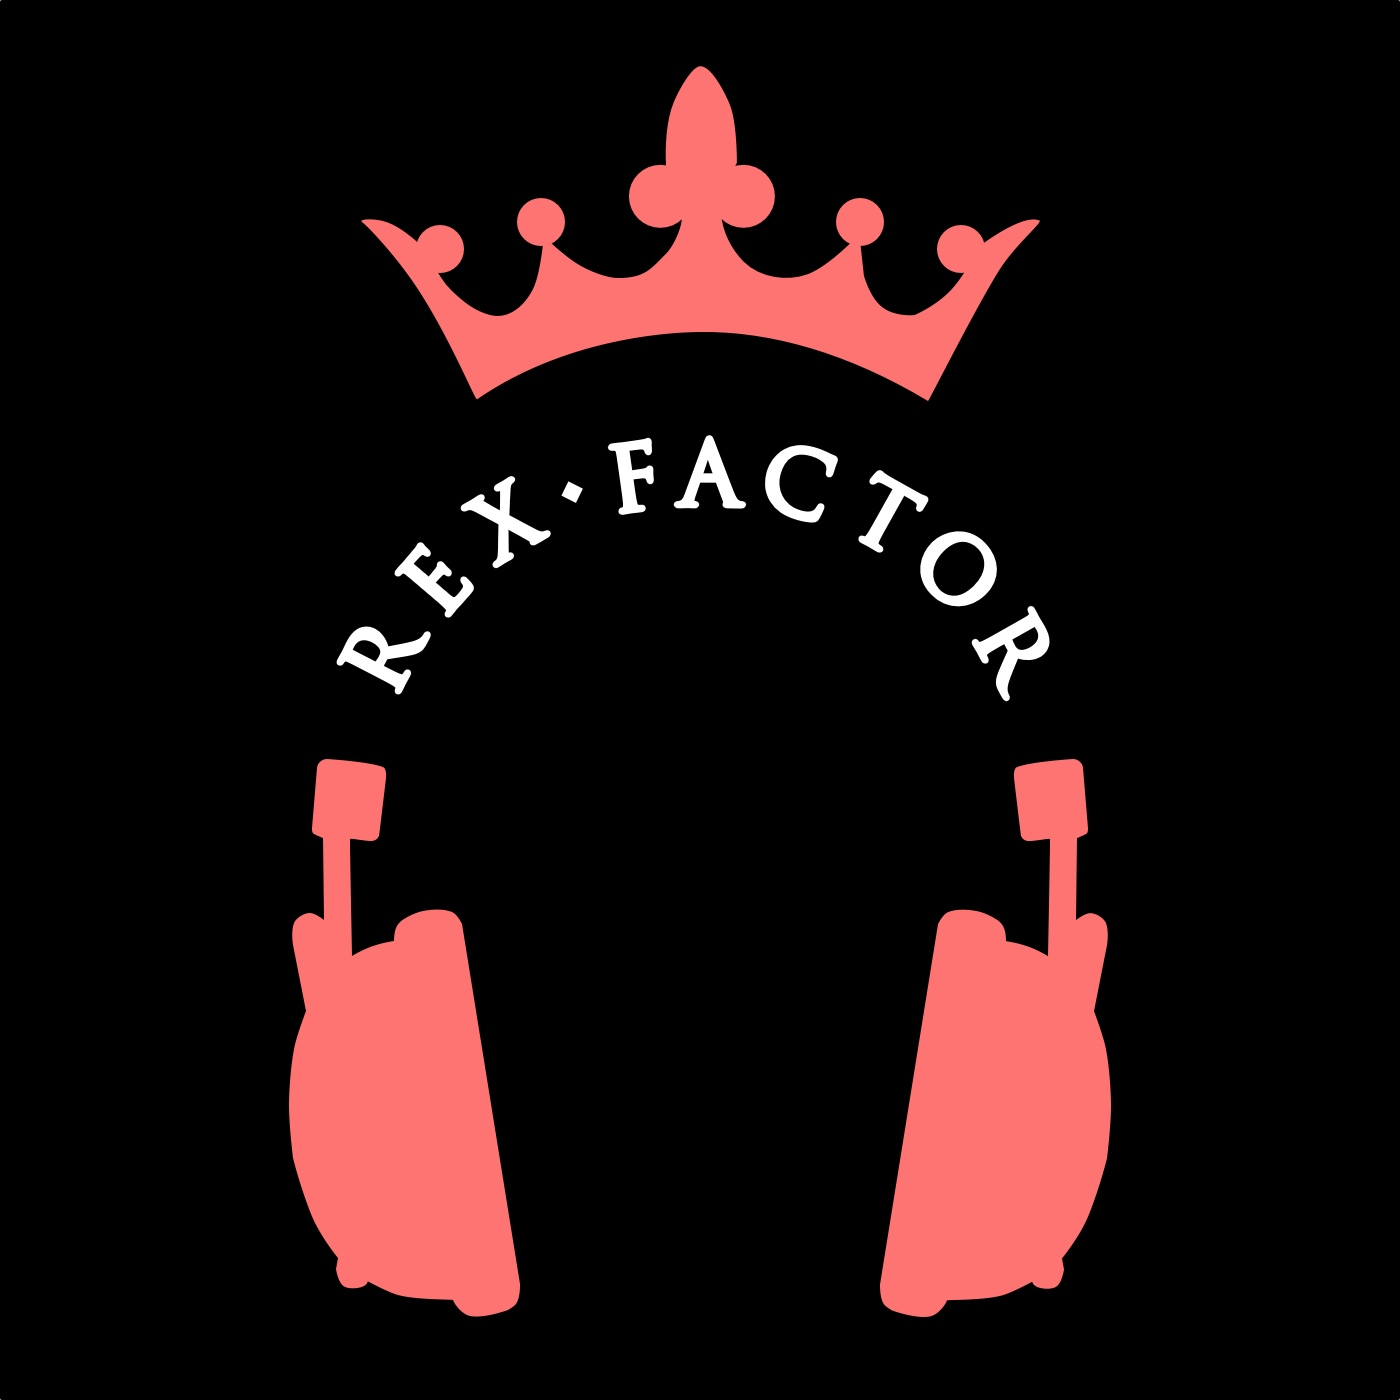 Rex Factor the Animated Show - Complete!